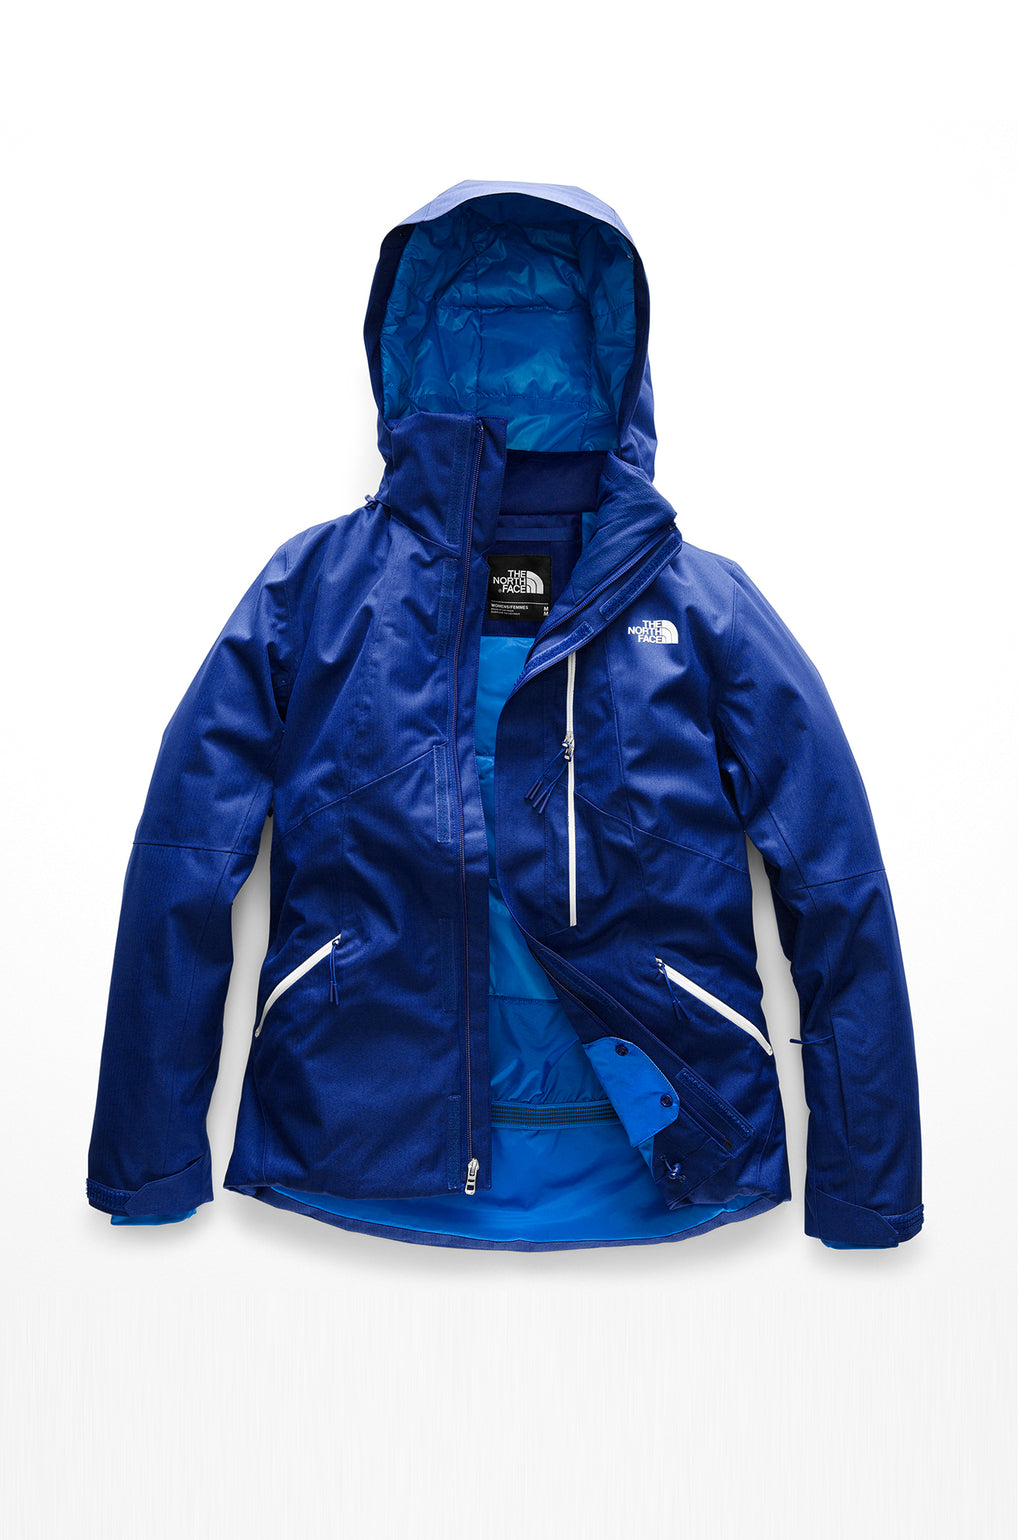 THE NORTH FACE WOMENS GATEKEEPER JACKET